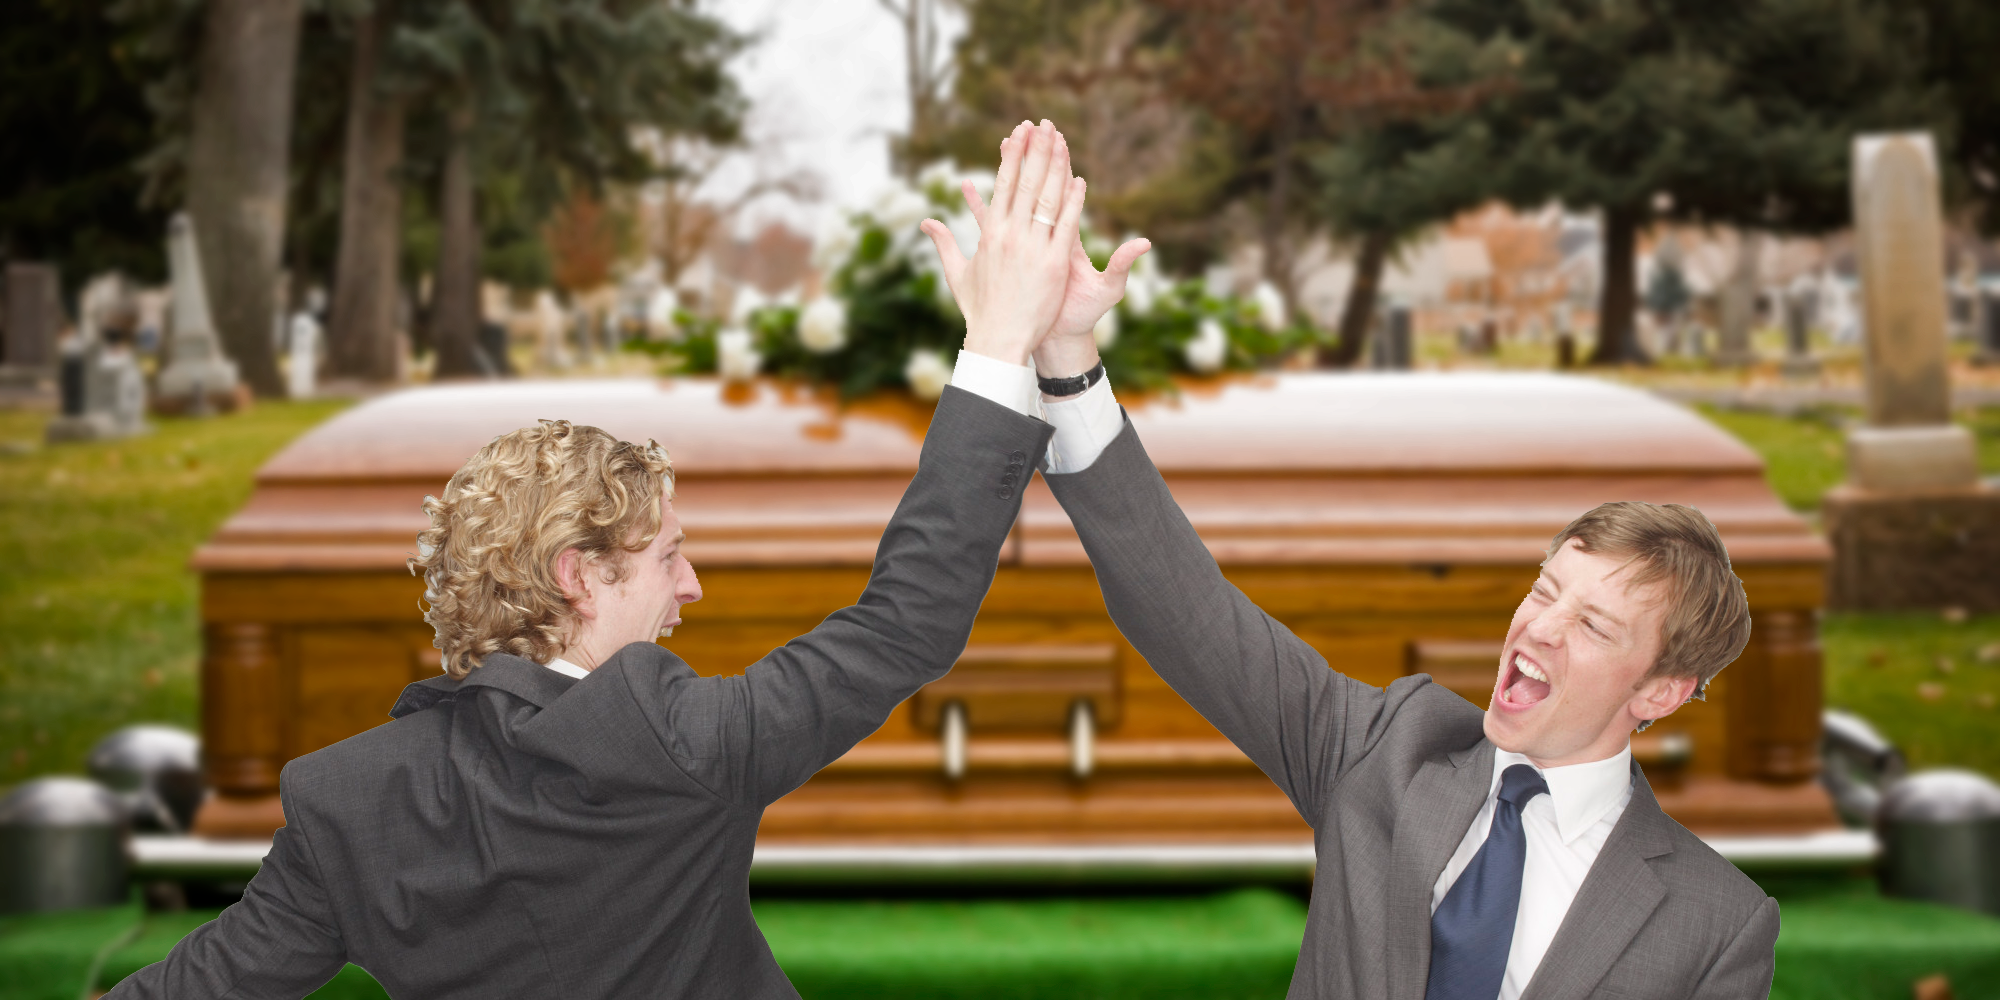 High five funeral